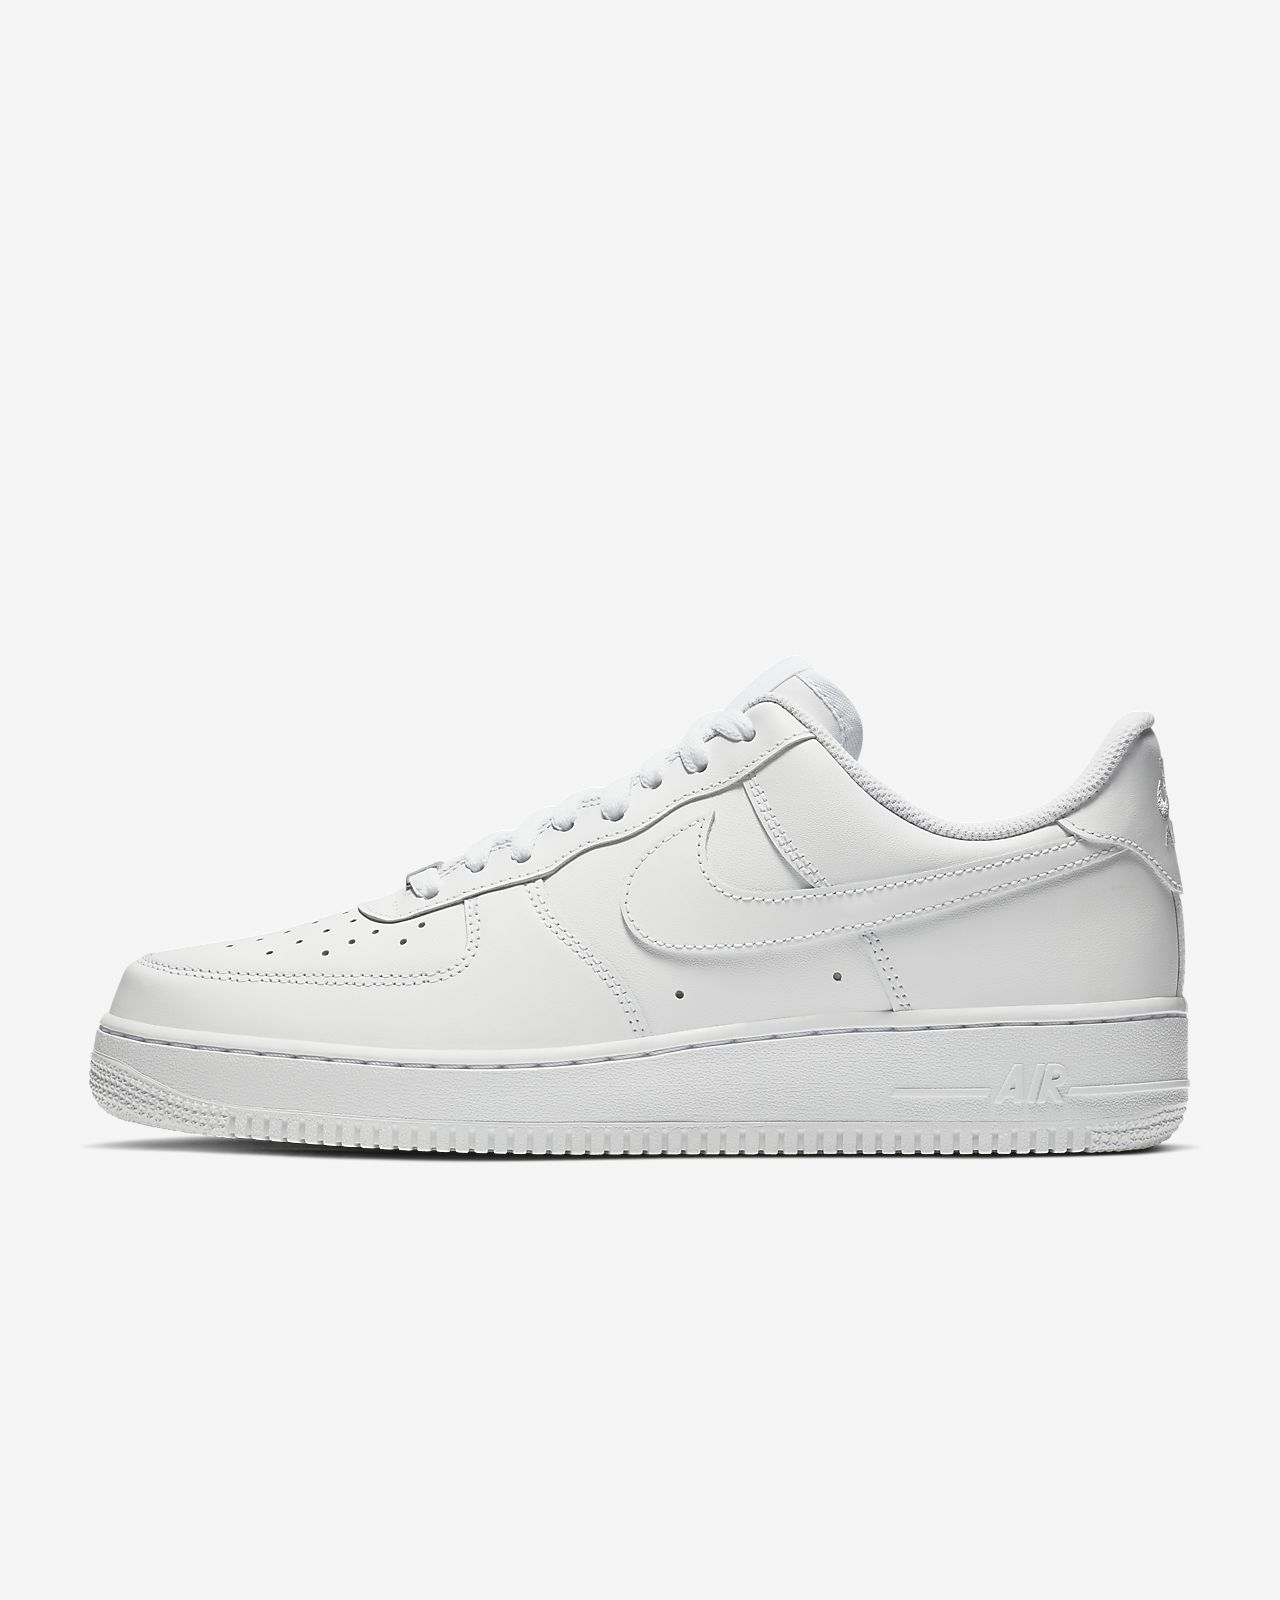 detailed look be7b4 8167a ... Nike Air Force 1 07 Shoe